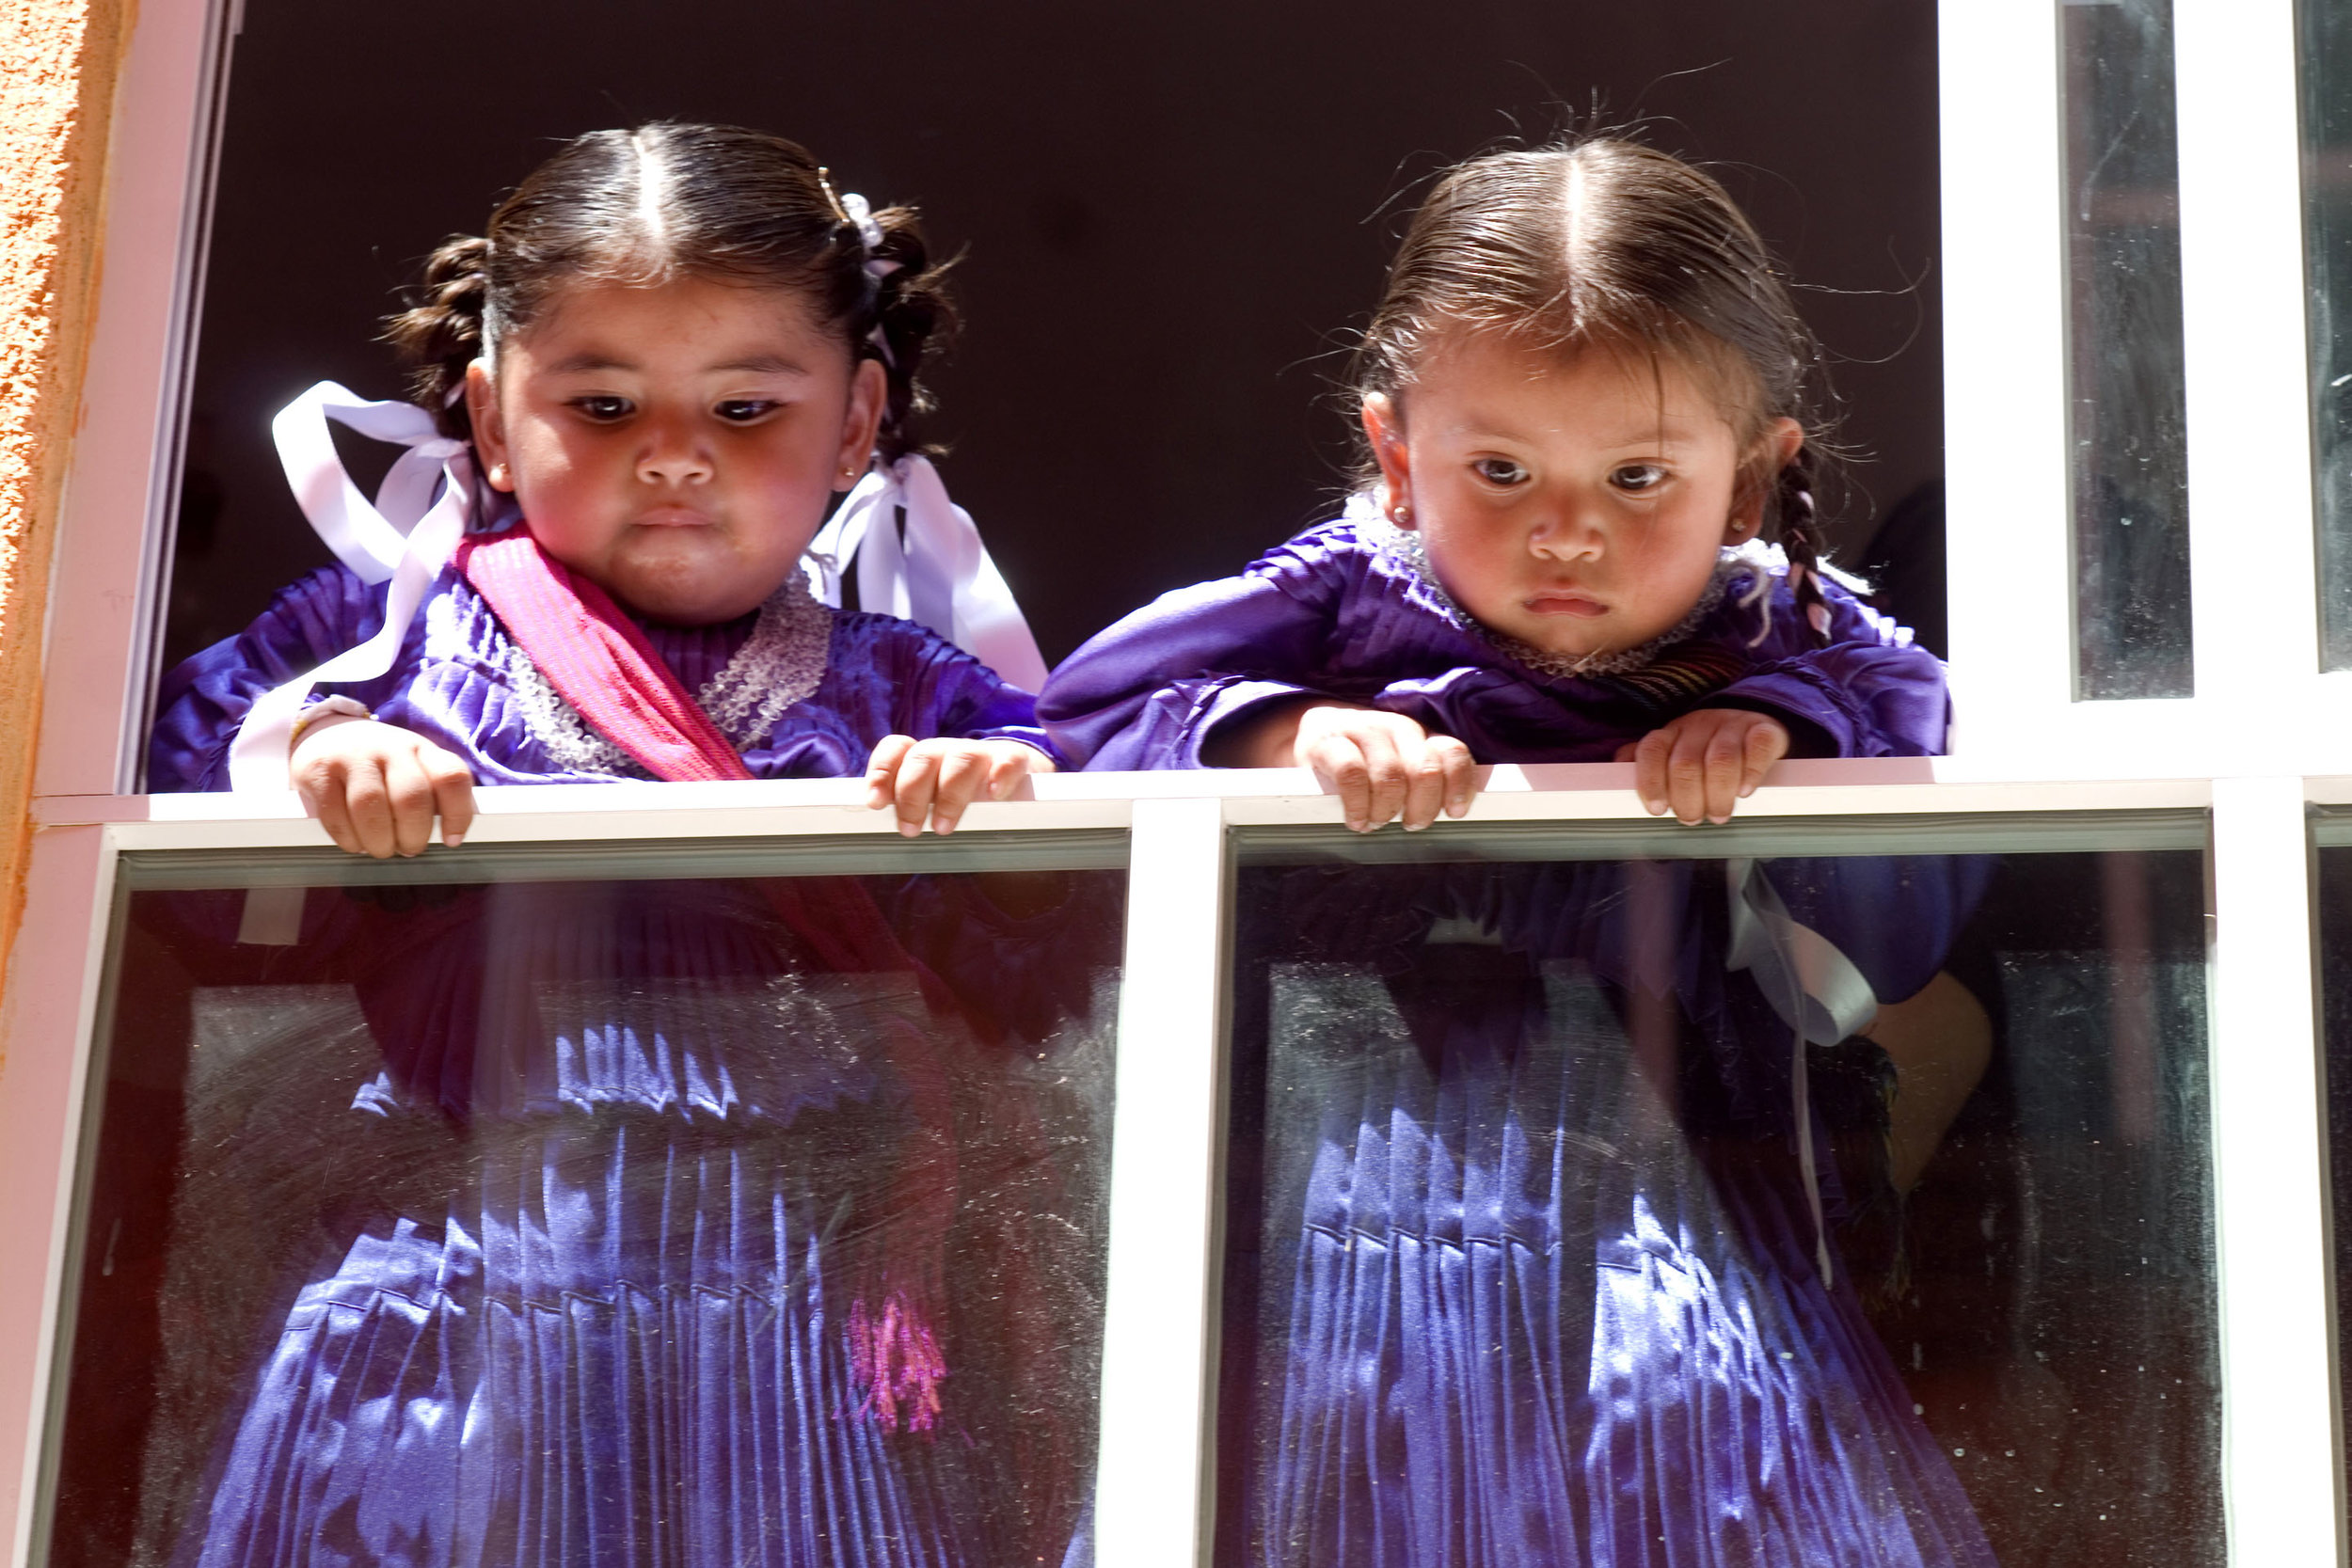 Mazahua Girls* in Traditional Dresses    by Jorge Ontiveros from Celebraciones Mexicanas: History, Traditions and Recipes. ALL RIGHTS RESERVED.